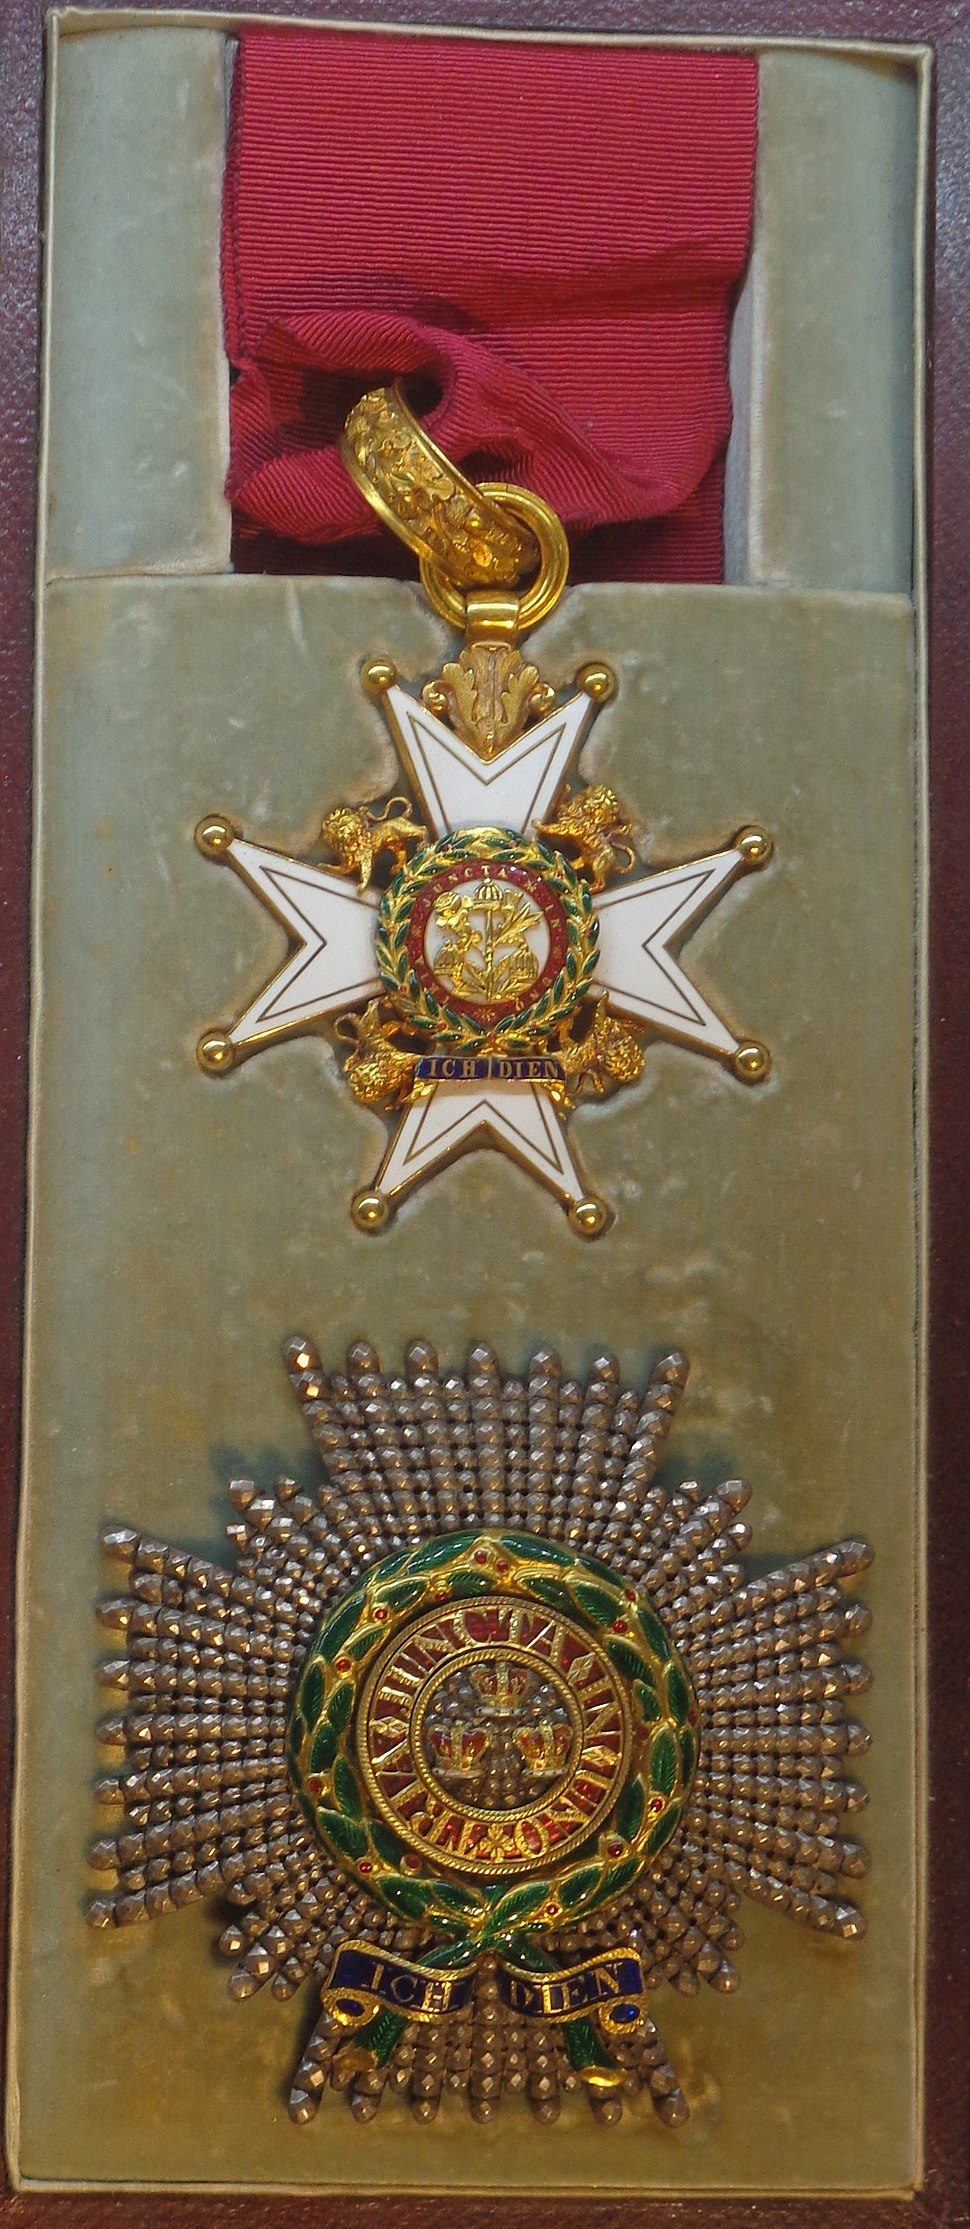 Order of the Bath knight commander military division insignias (United Kingdom) - Tallinn Museum of Orders